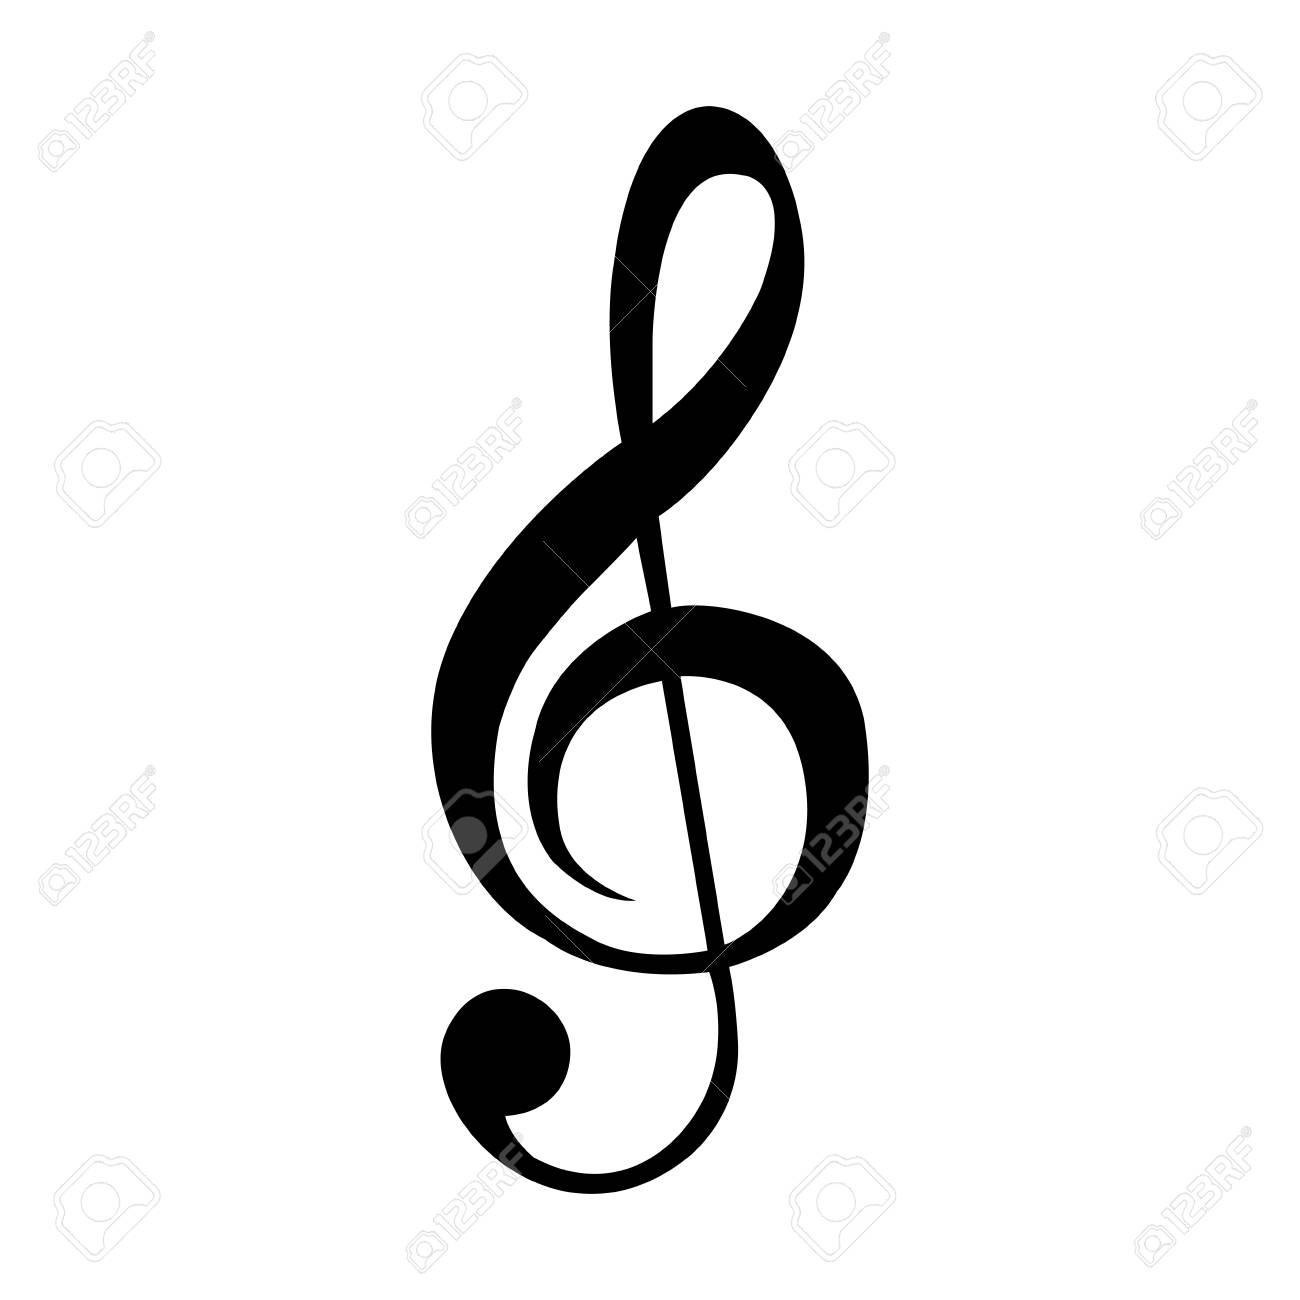 isolated musical note silhouette on a white background, vector.. royalty  free cliparts, vectors, and stock illustration. image 86222496.  123rf